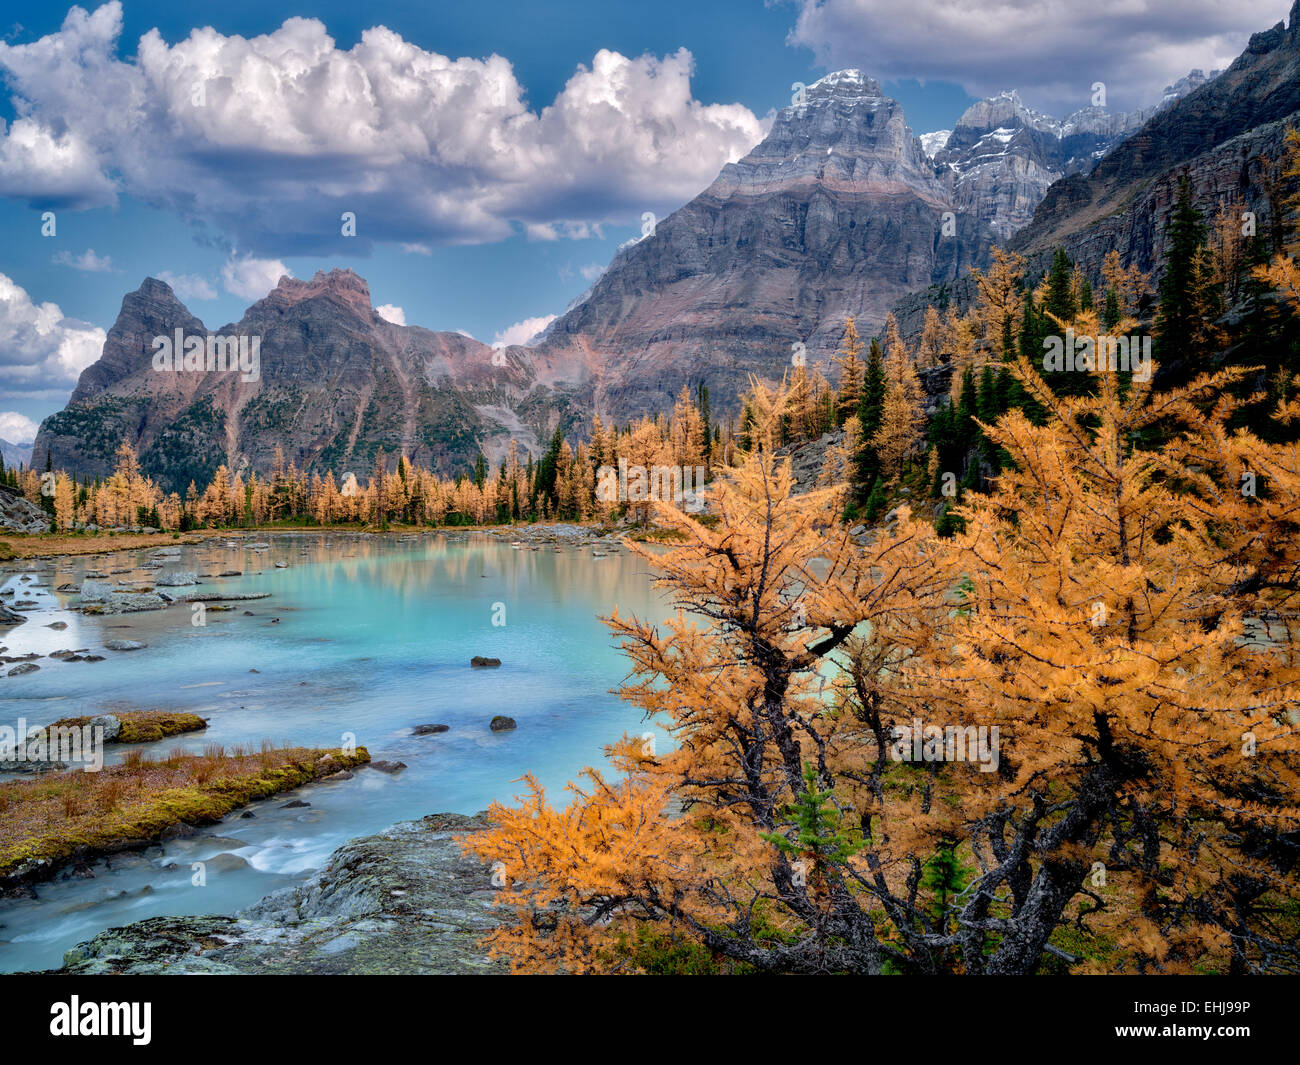 Mt Huber and fall colored larch. Opabin Plateau of British Columbia's Canadian Rockies and Yoho National Park. - Stock Image